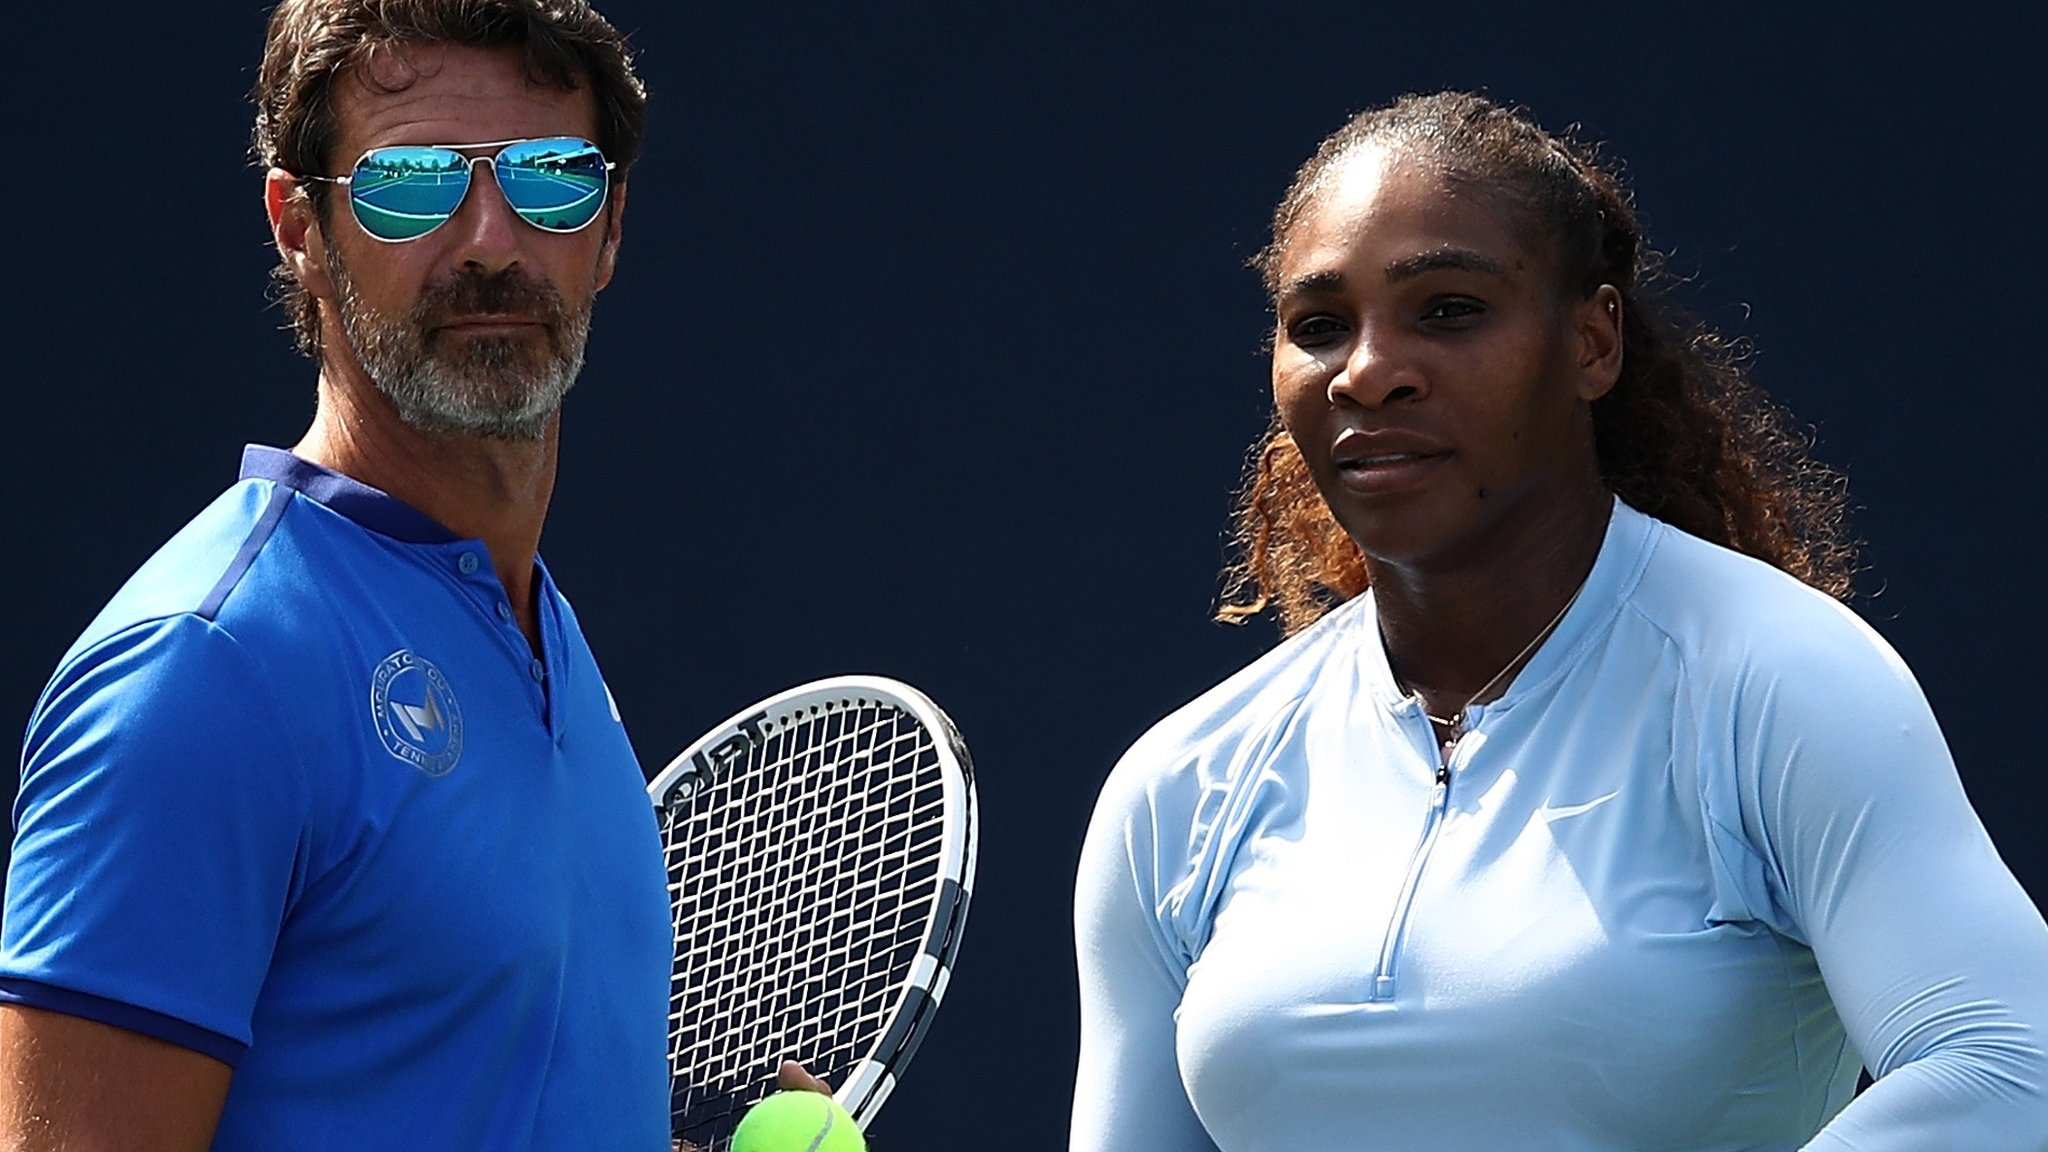 Allowing on-court coaching would 'attract new people' to tennis, says Williams' coach